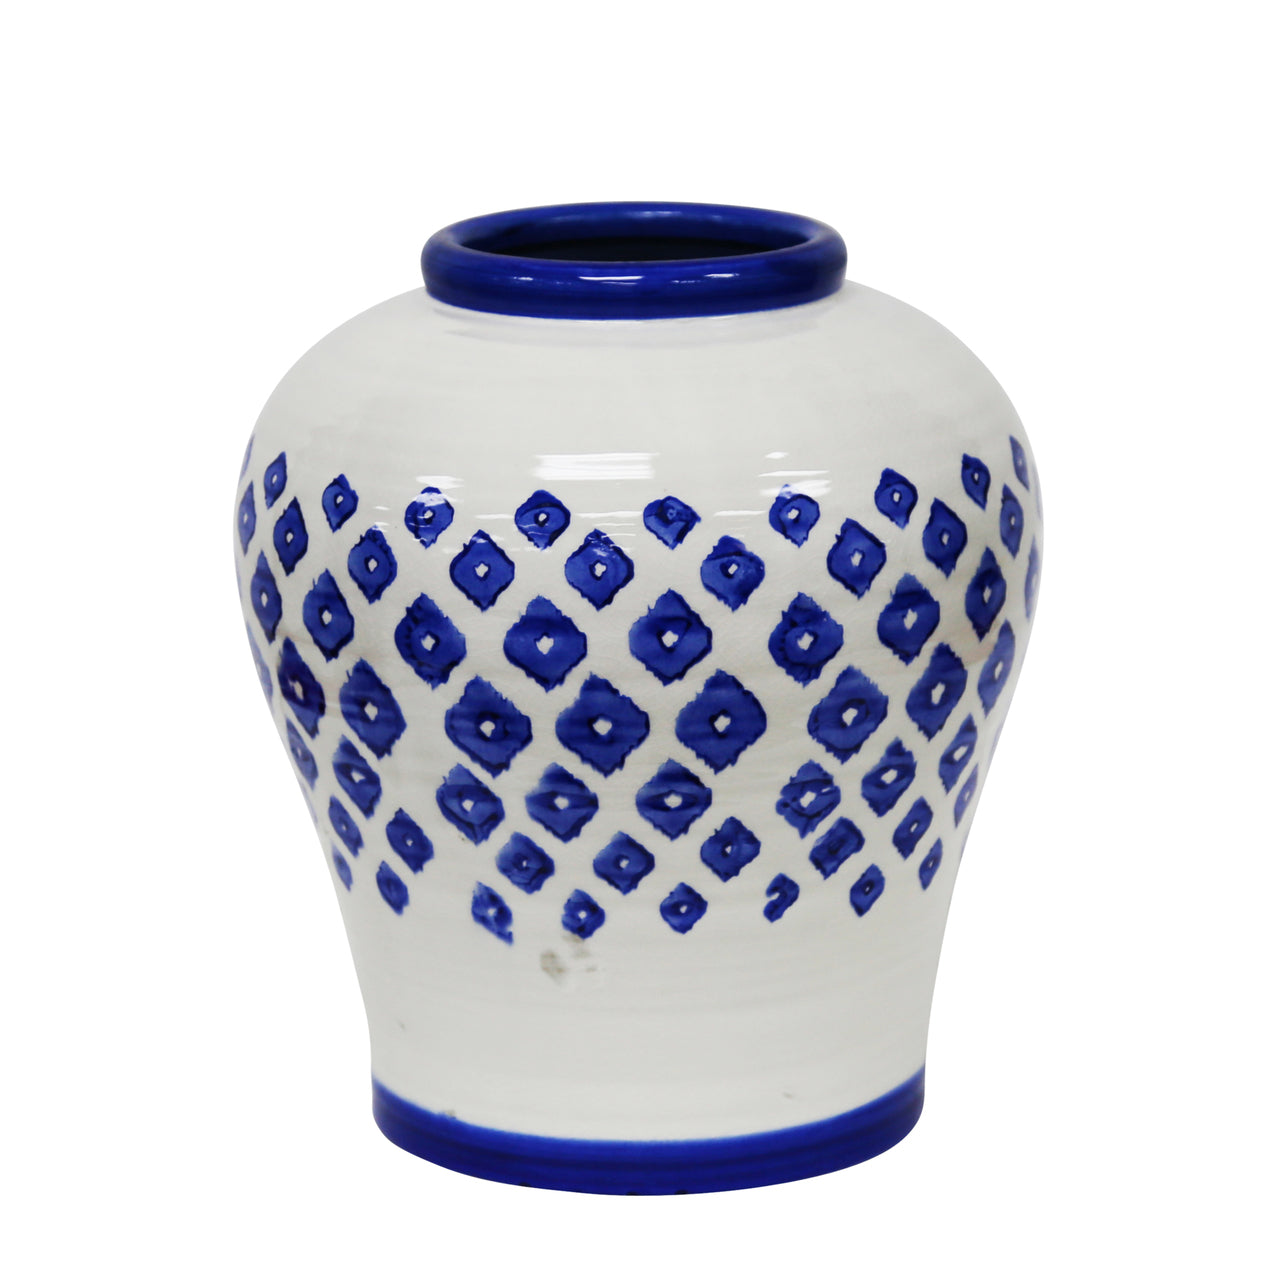 Blue and White Stencil Vase